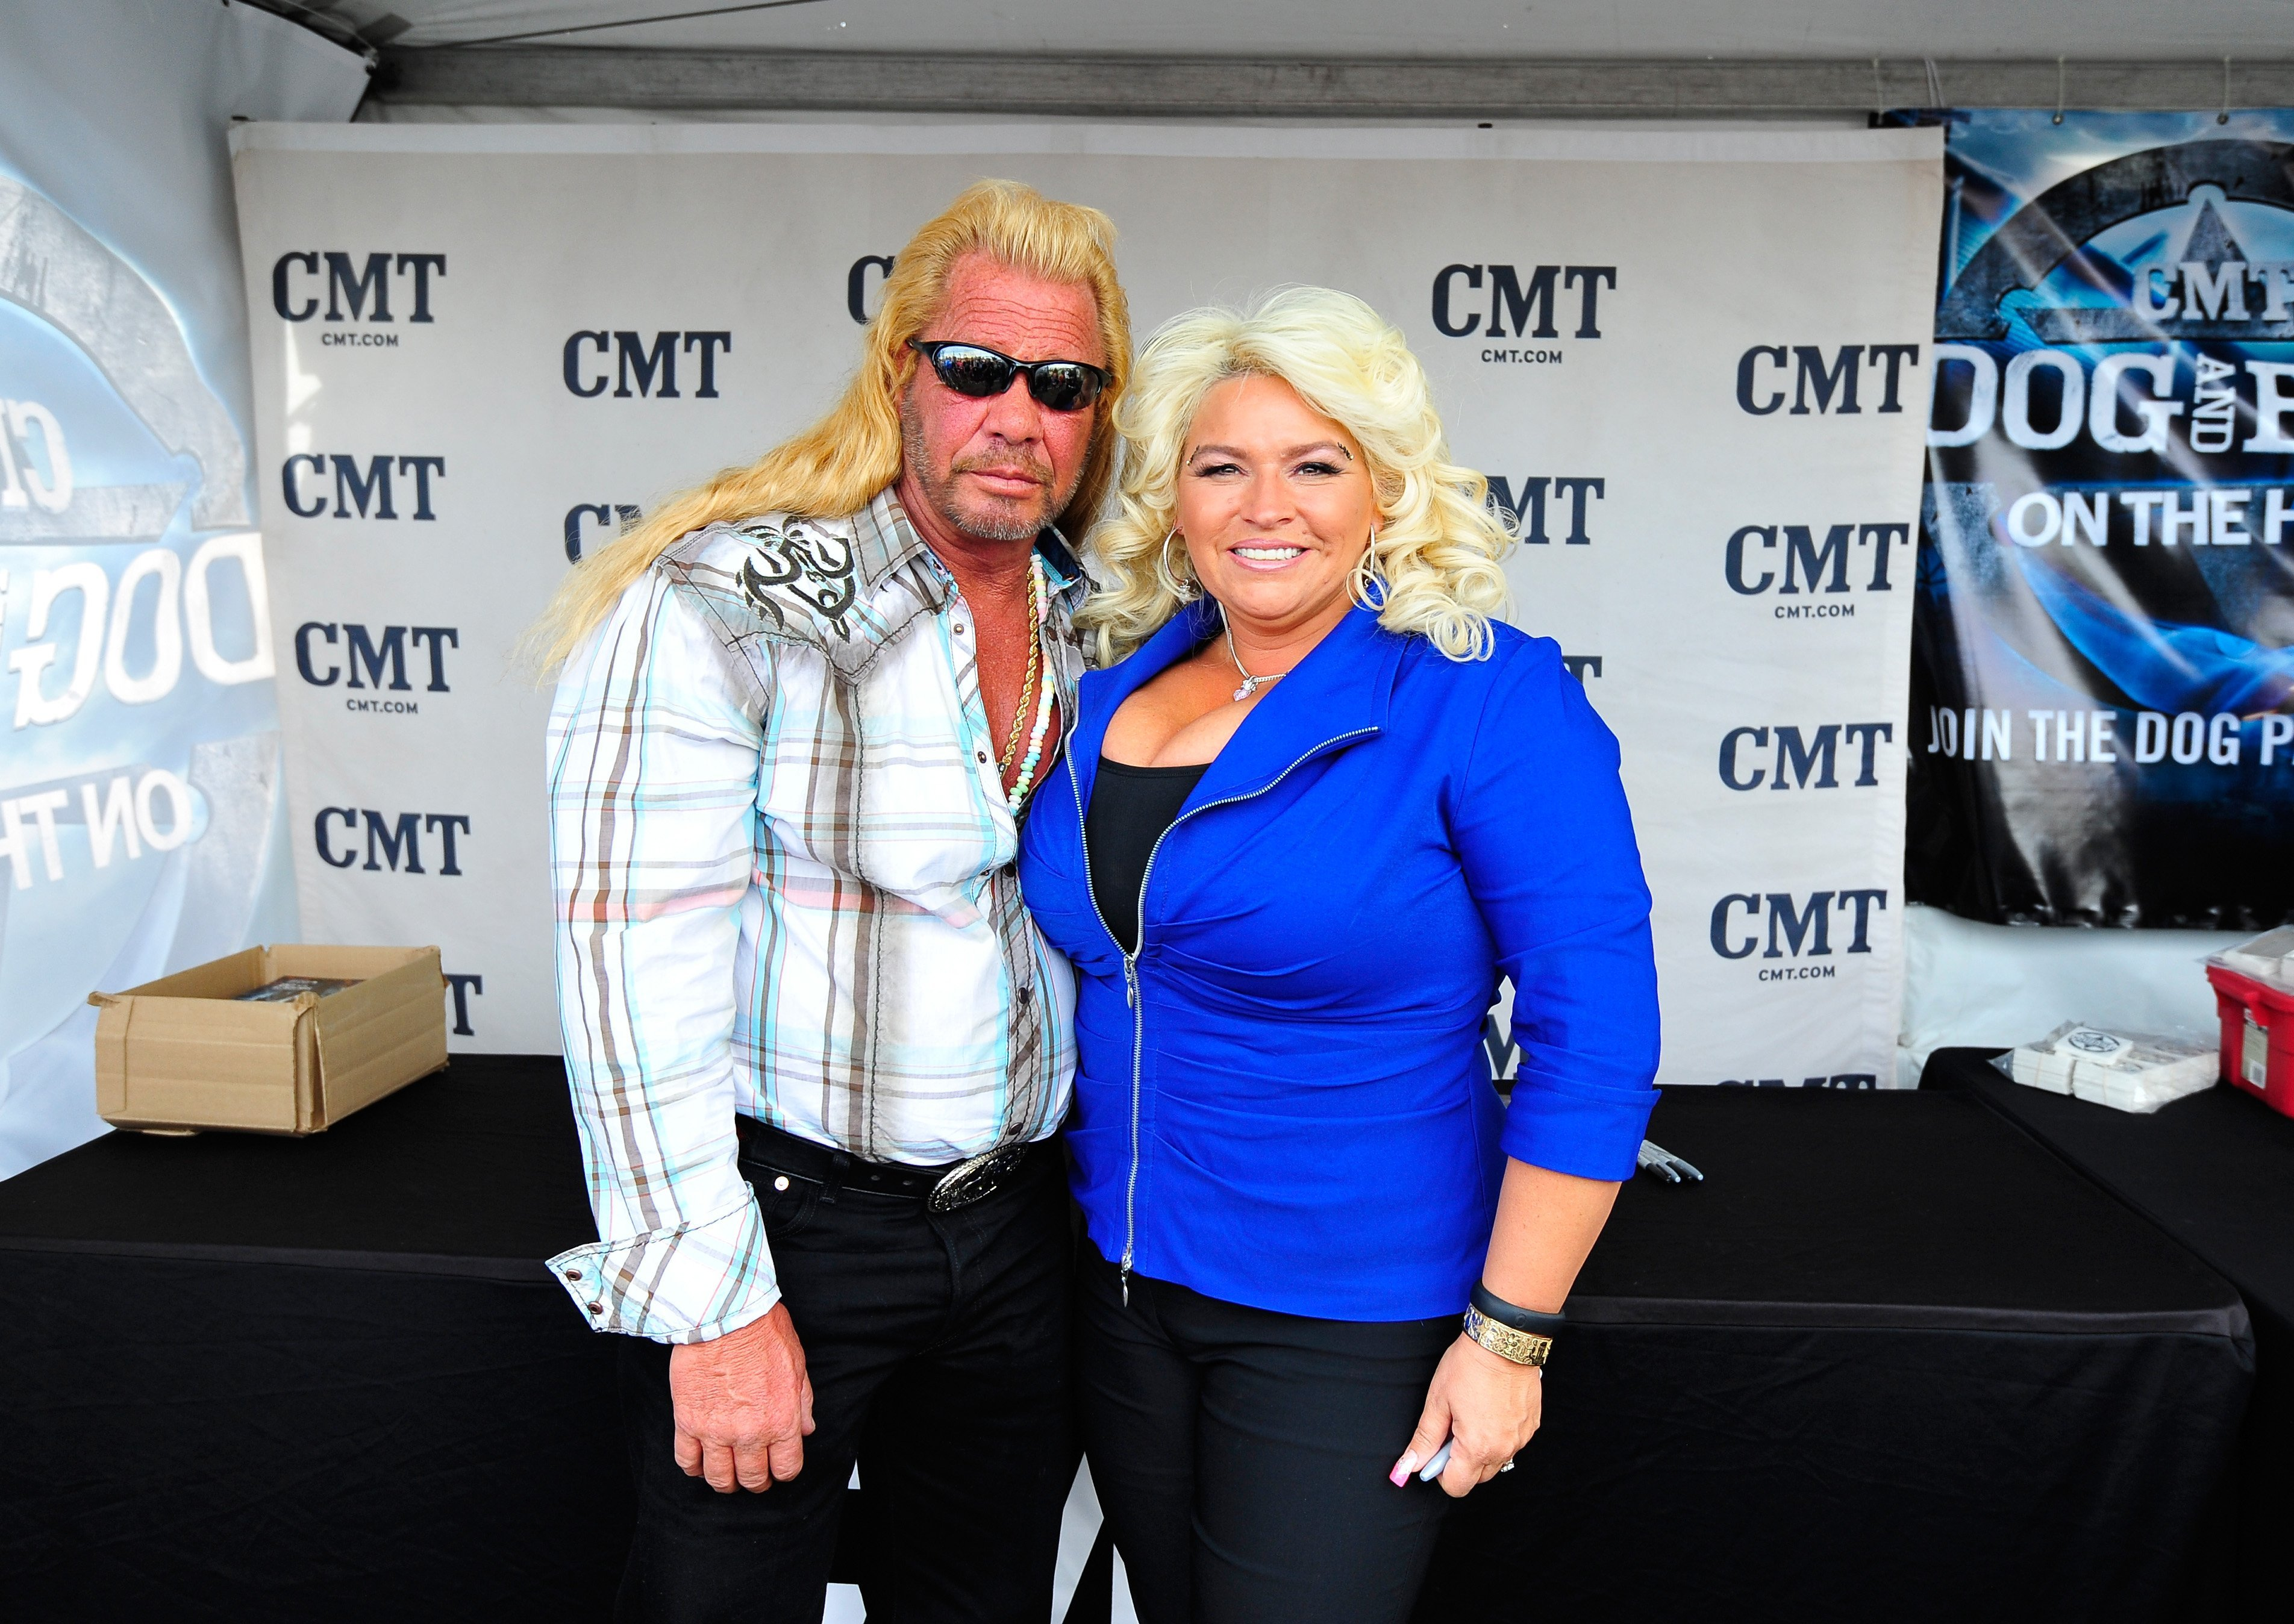 Duane and Beth Chapman at the ACM Experience during the 48th Annual Academy of Country Music Awards at the Orleans Arena on April 5, 2013 in Las Vegas, Nevada | Photo: Getty Images